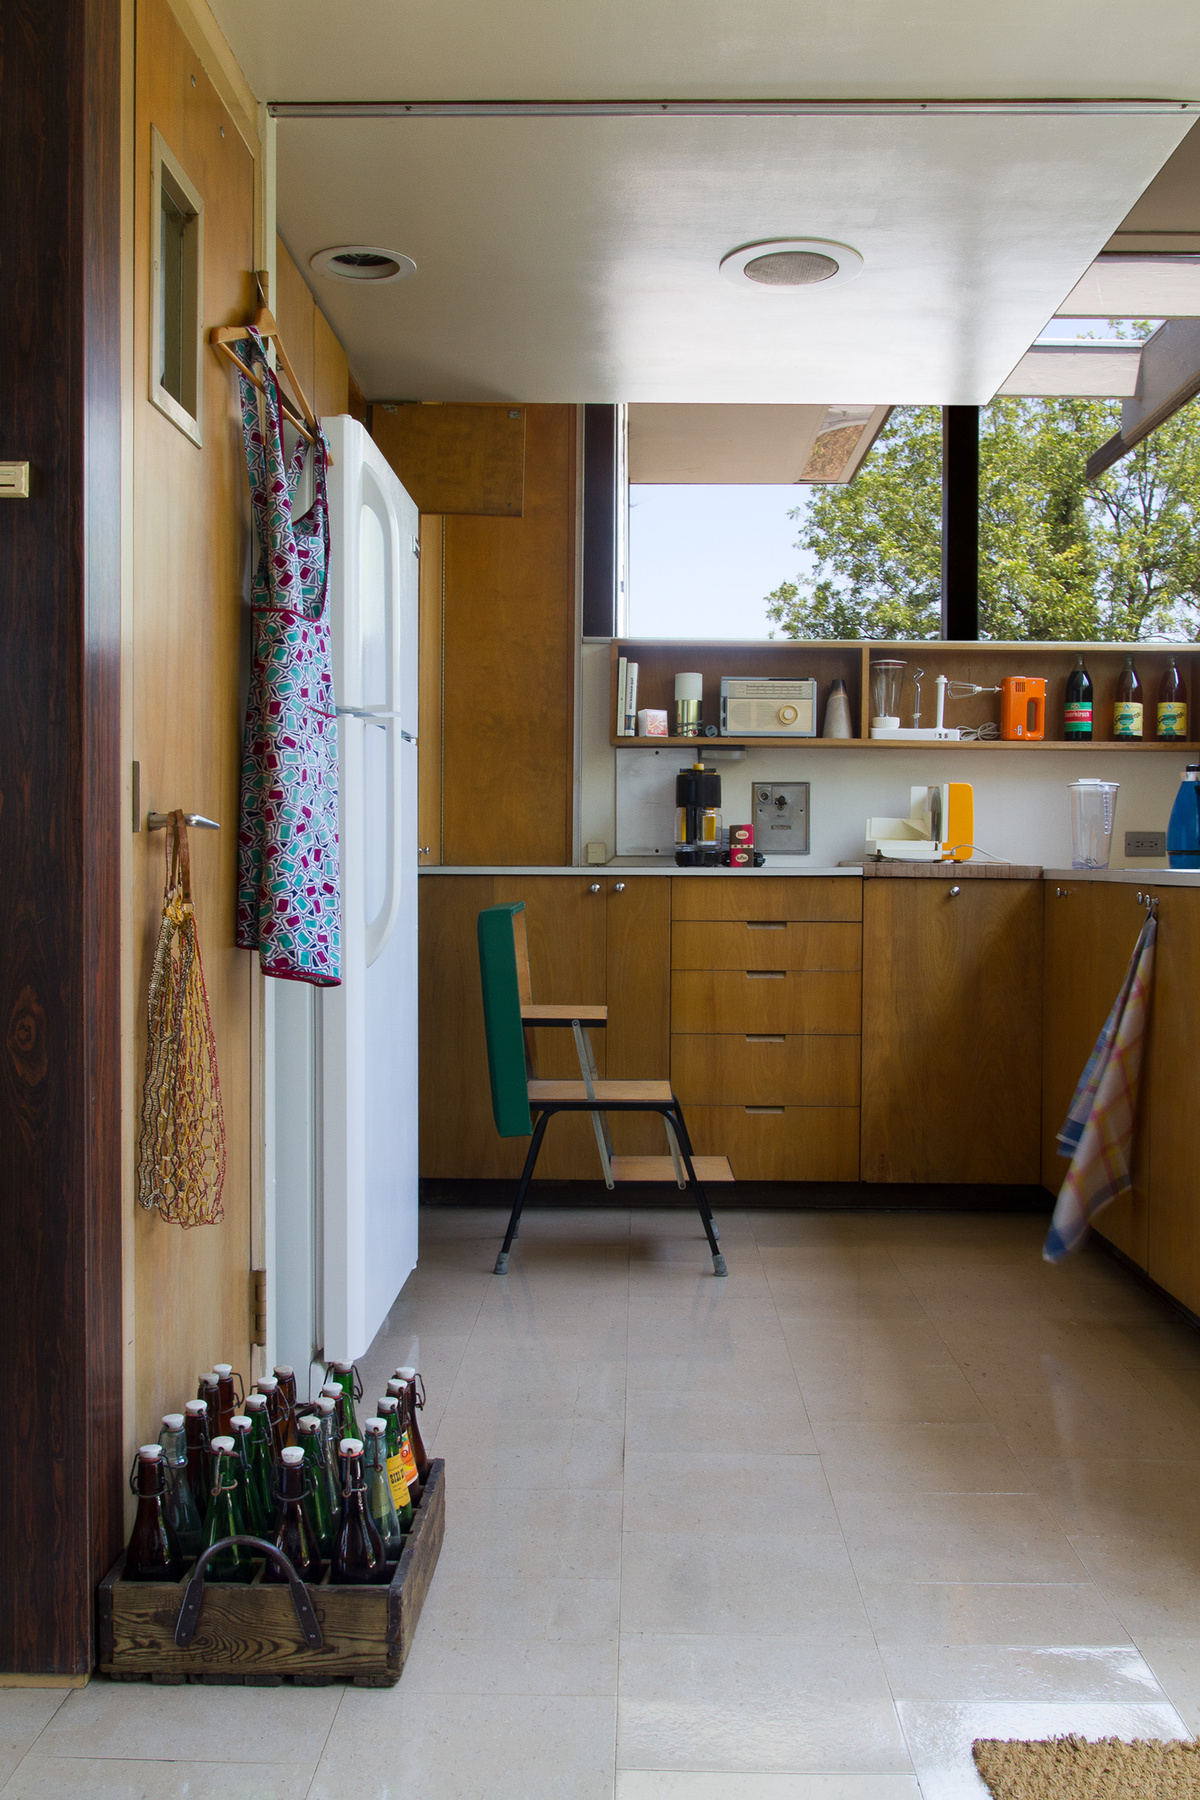 The VDLs kitchen in Competing Utopias, photo by David Hartwell, courtesy of Sarah Lorenzen.